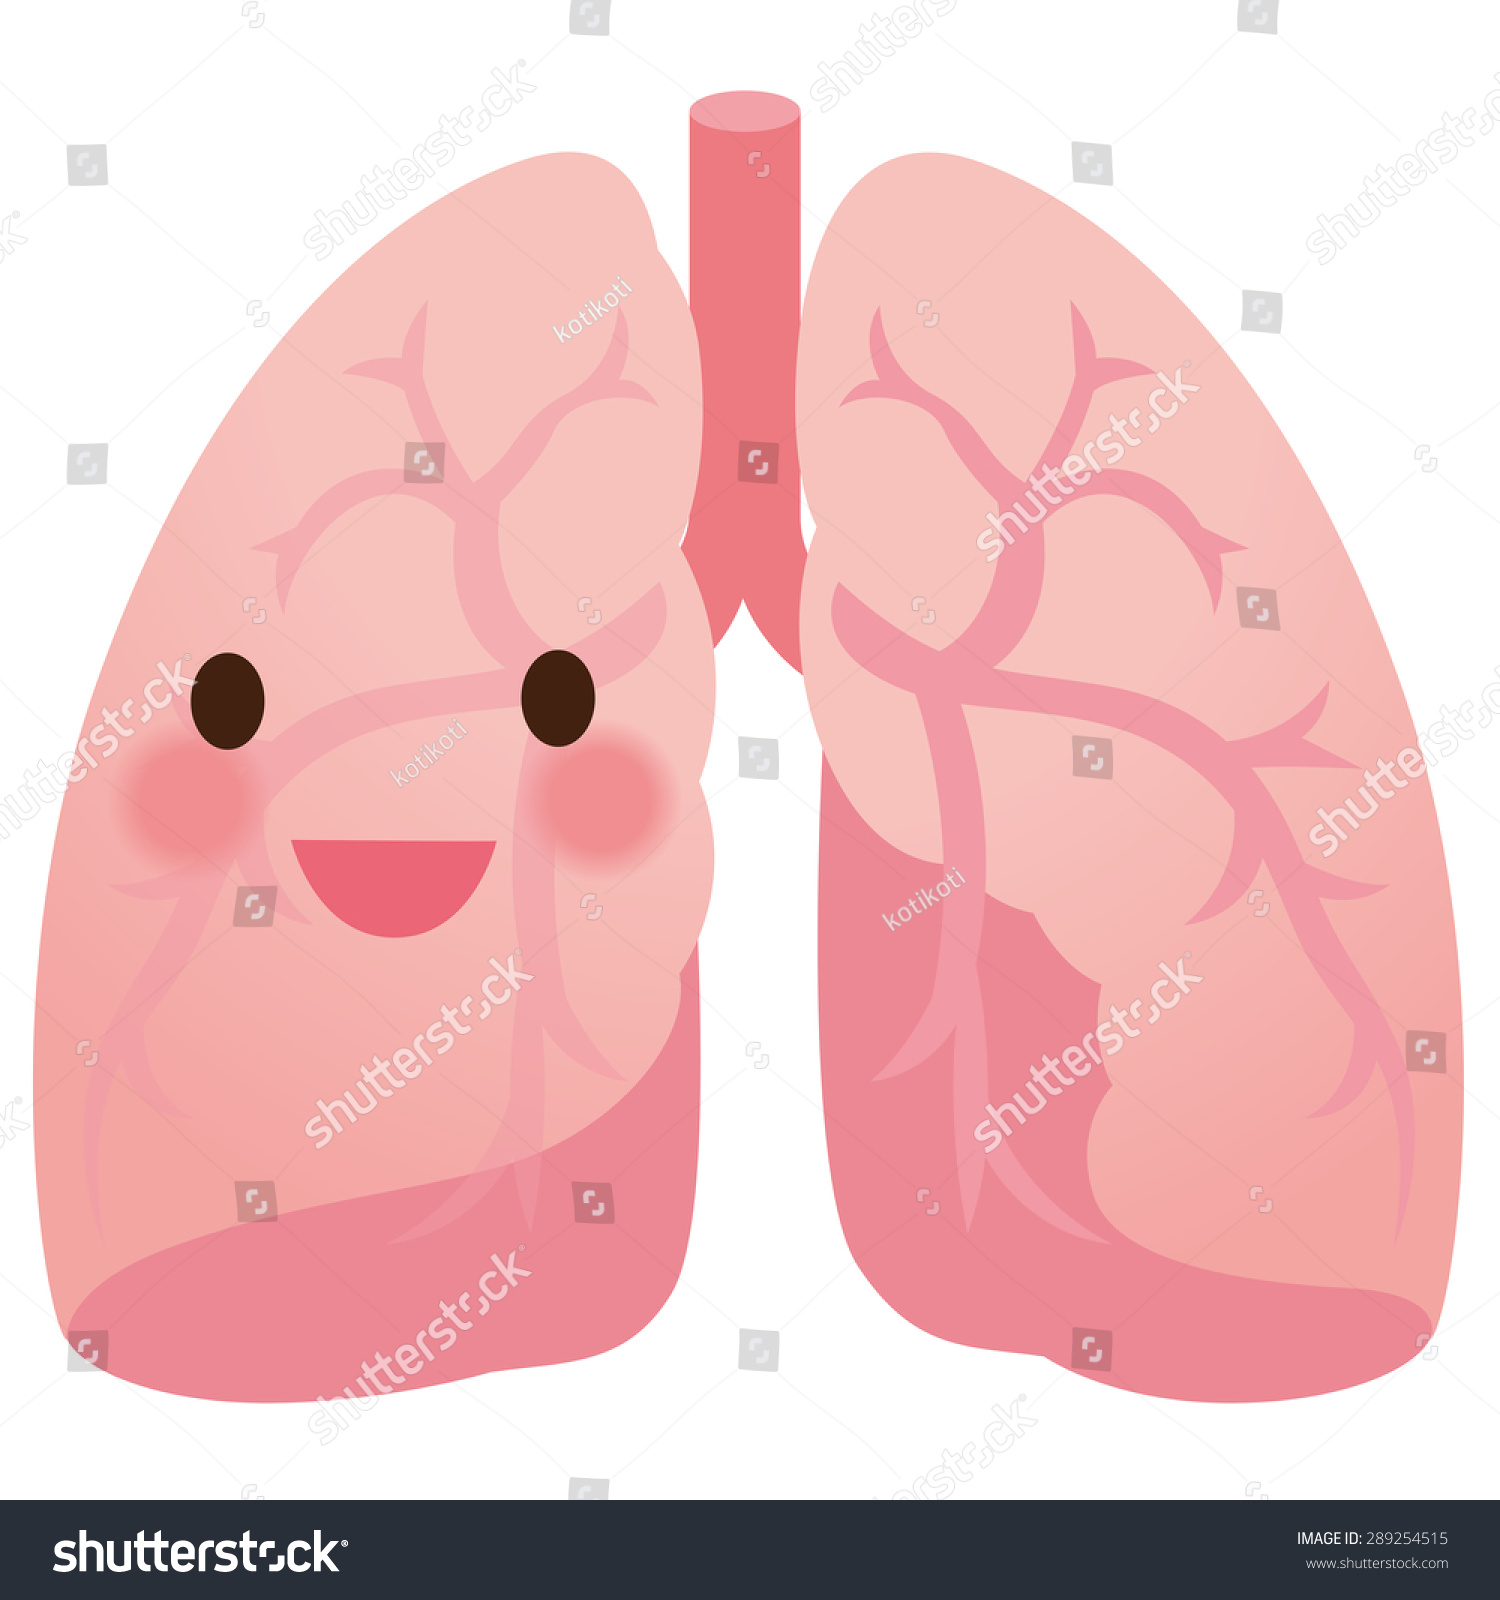 Healthy Lungs Clipart healthy lungs stock photos, images, & pictures ...